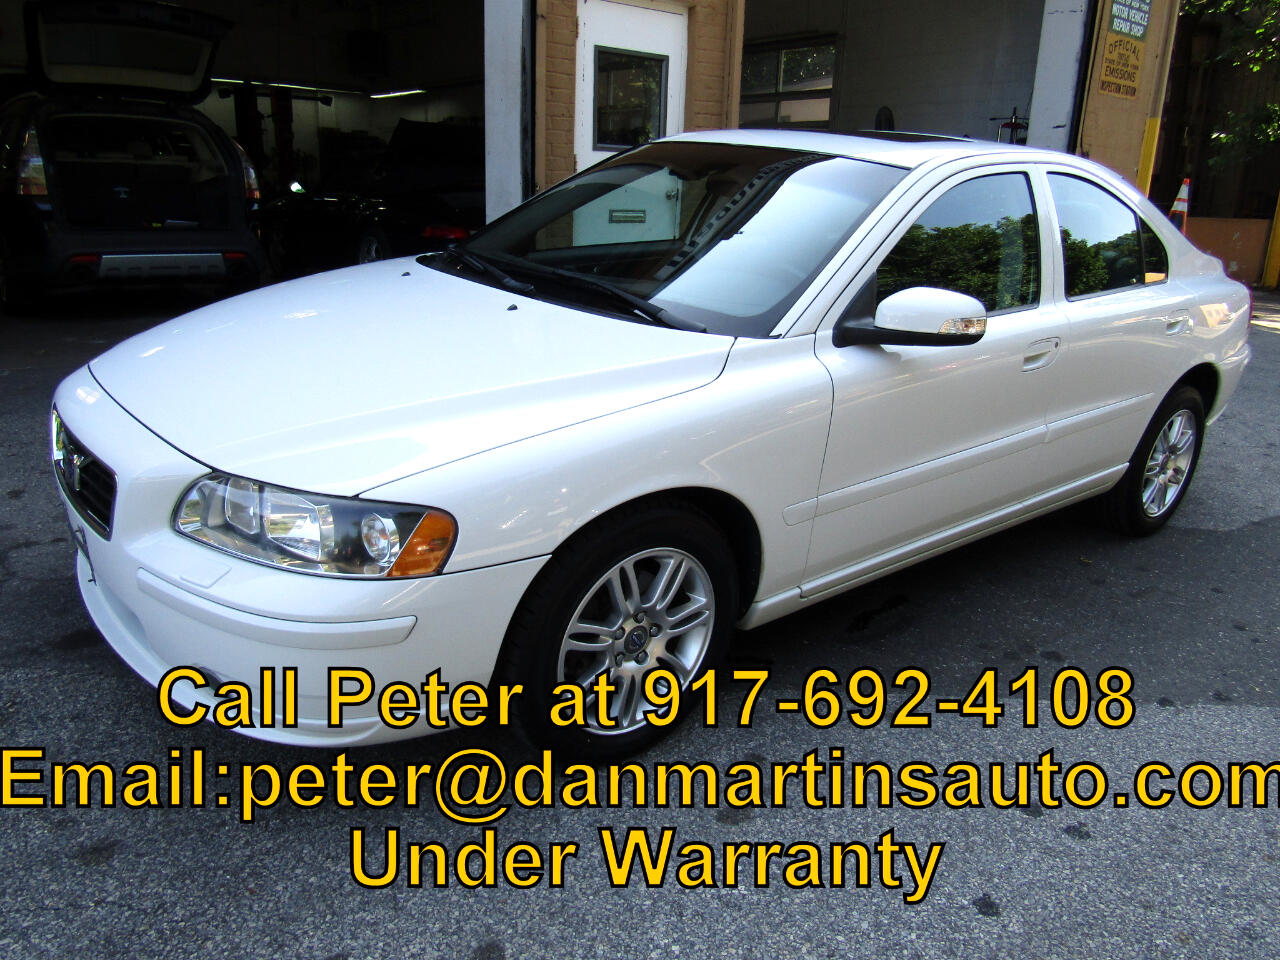 Volvo S60 4dr Sdn 2.5T AWD 2008